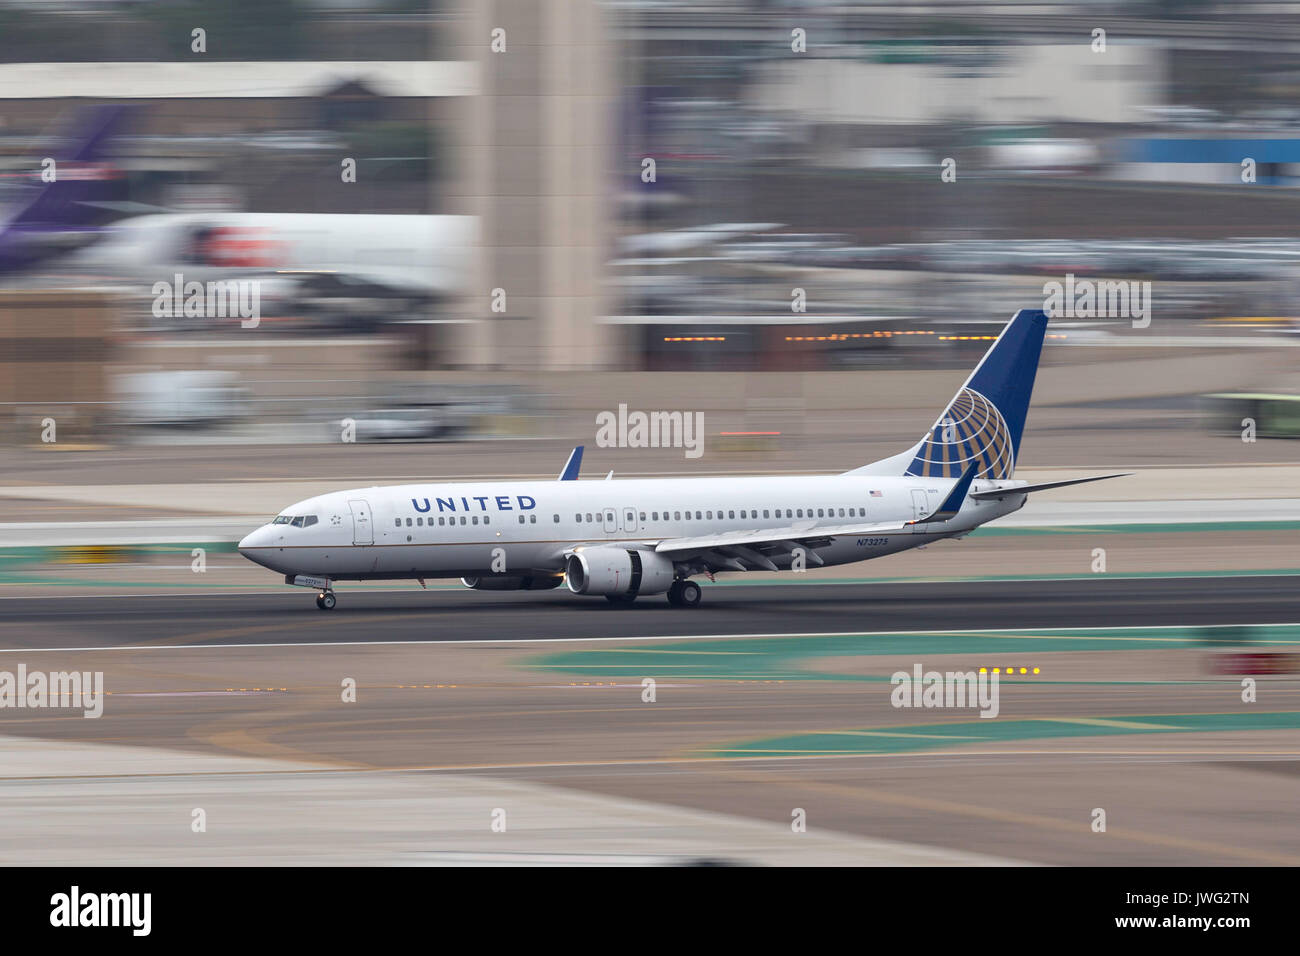 United Airlines Boeing 737-824 N73275 arriving at San Diego International Airport. - Stock Image